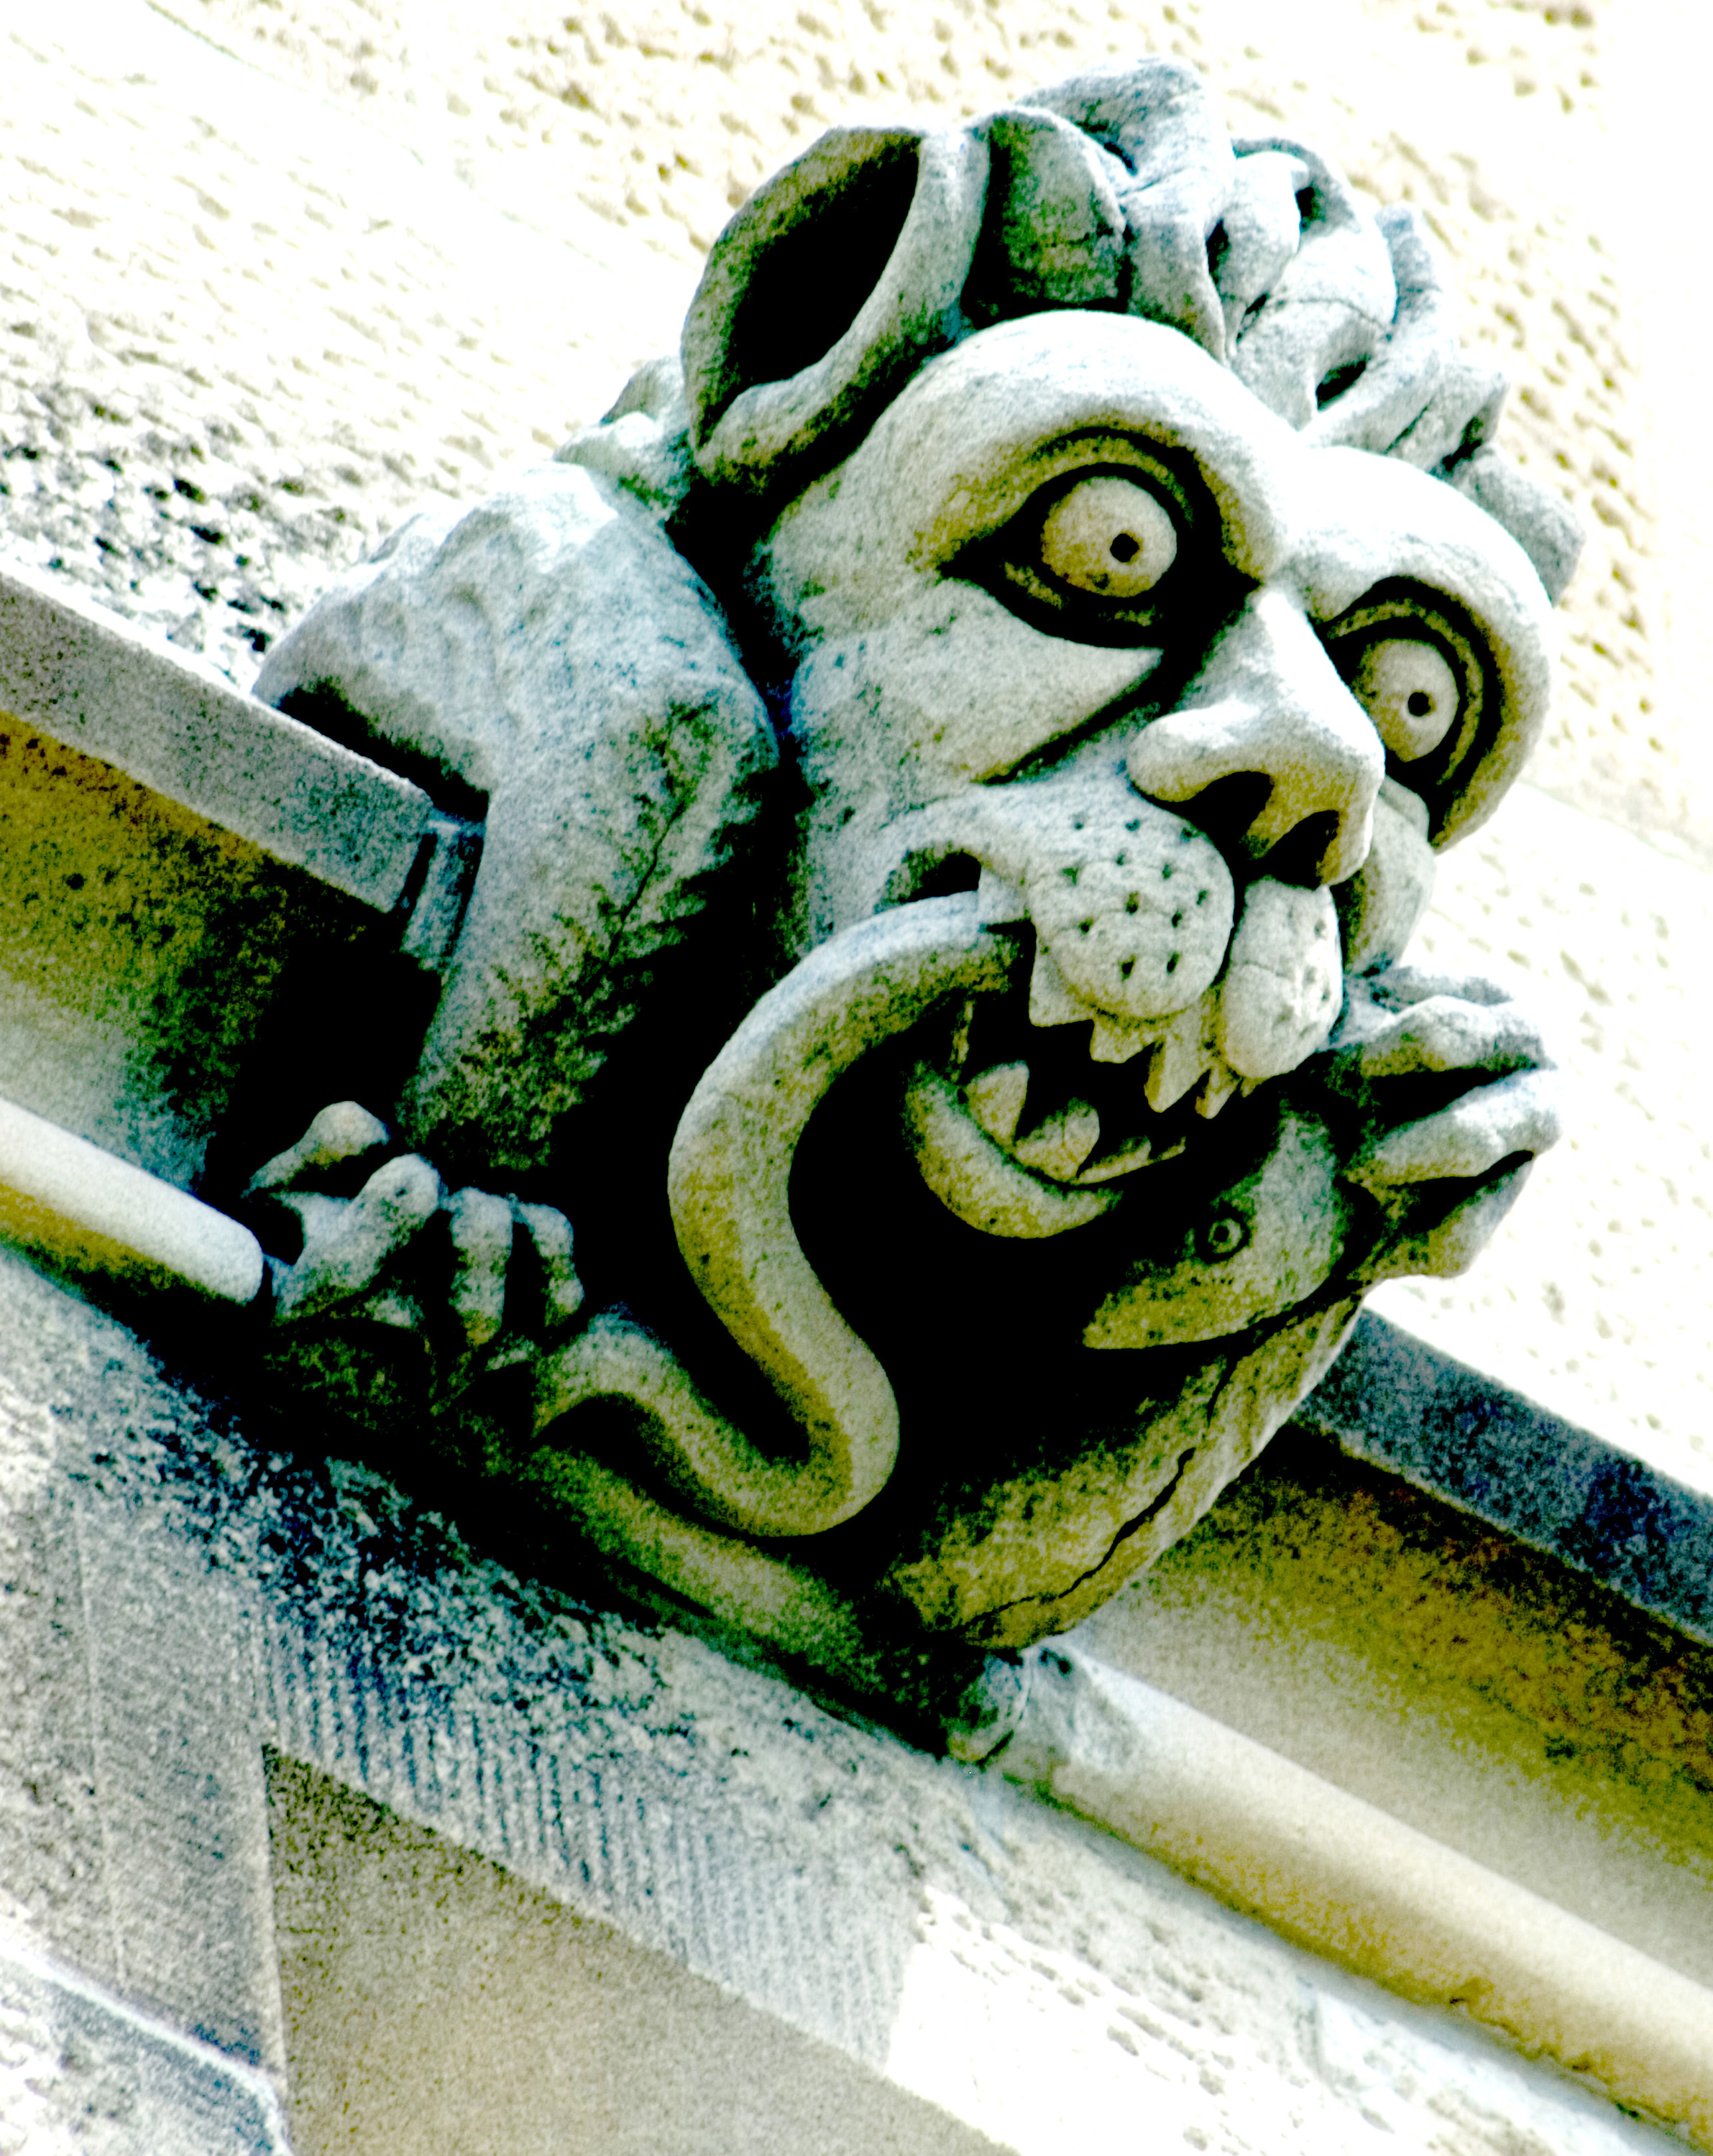 grotesque stone decoration eating a snake